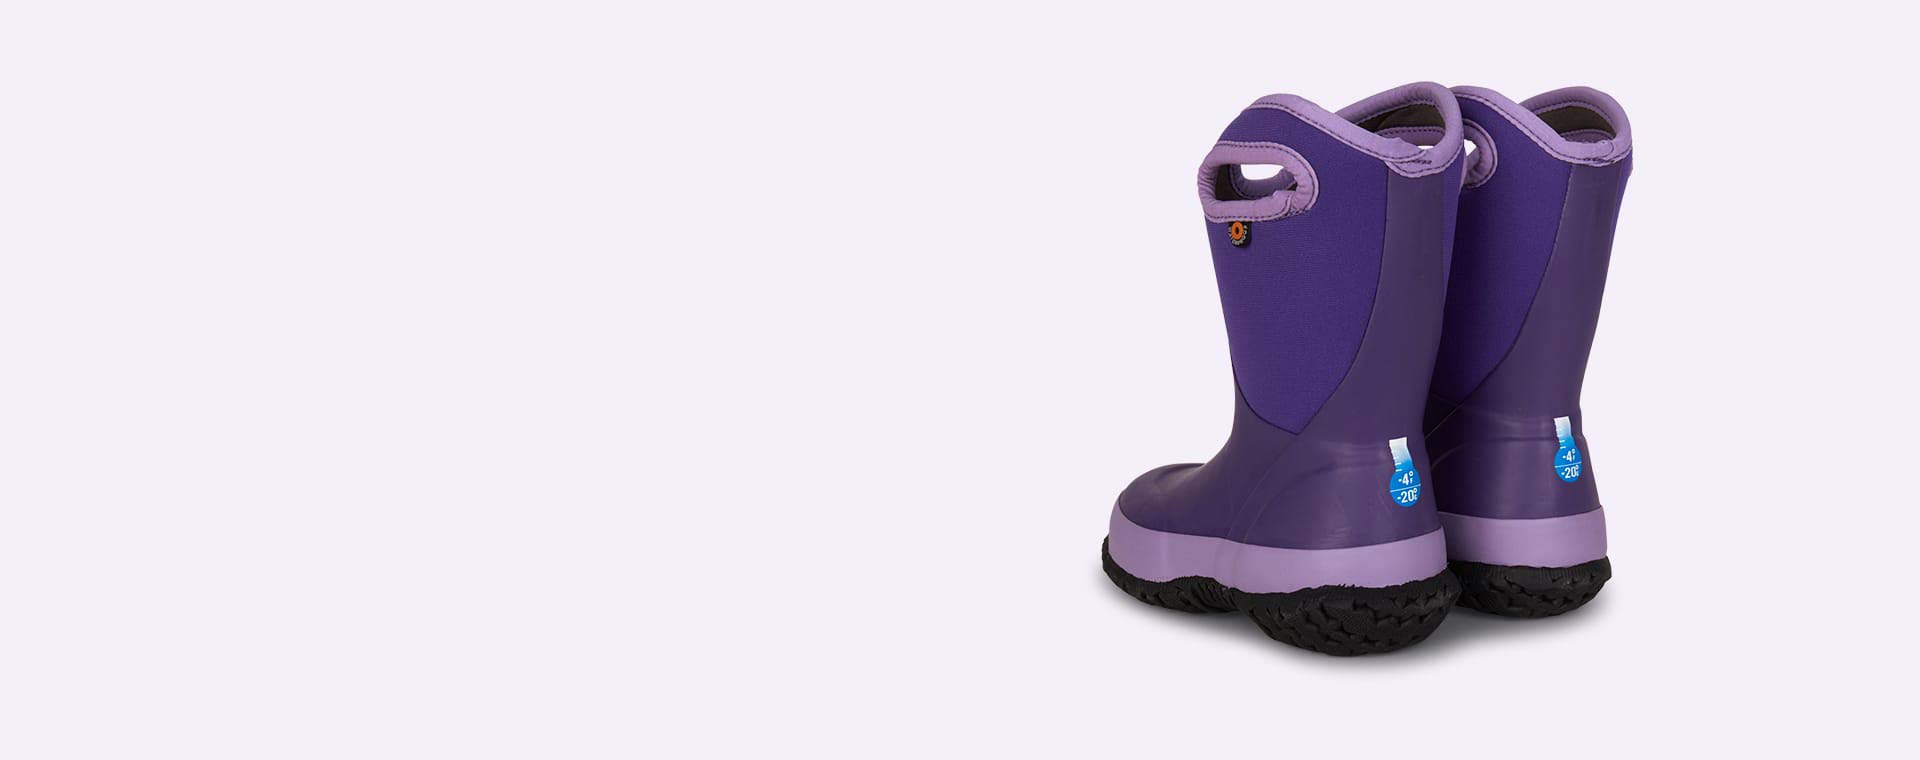 Violet Bogs Slushie Kids Wellies